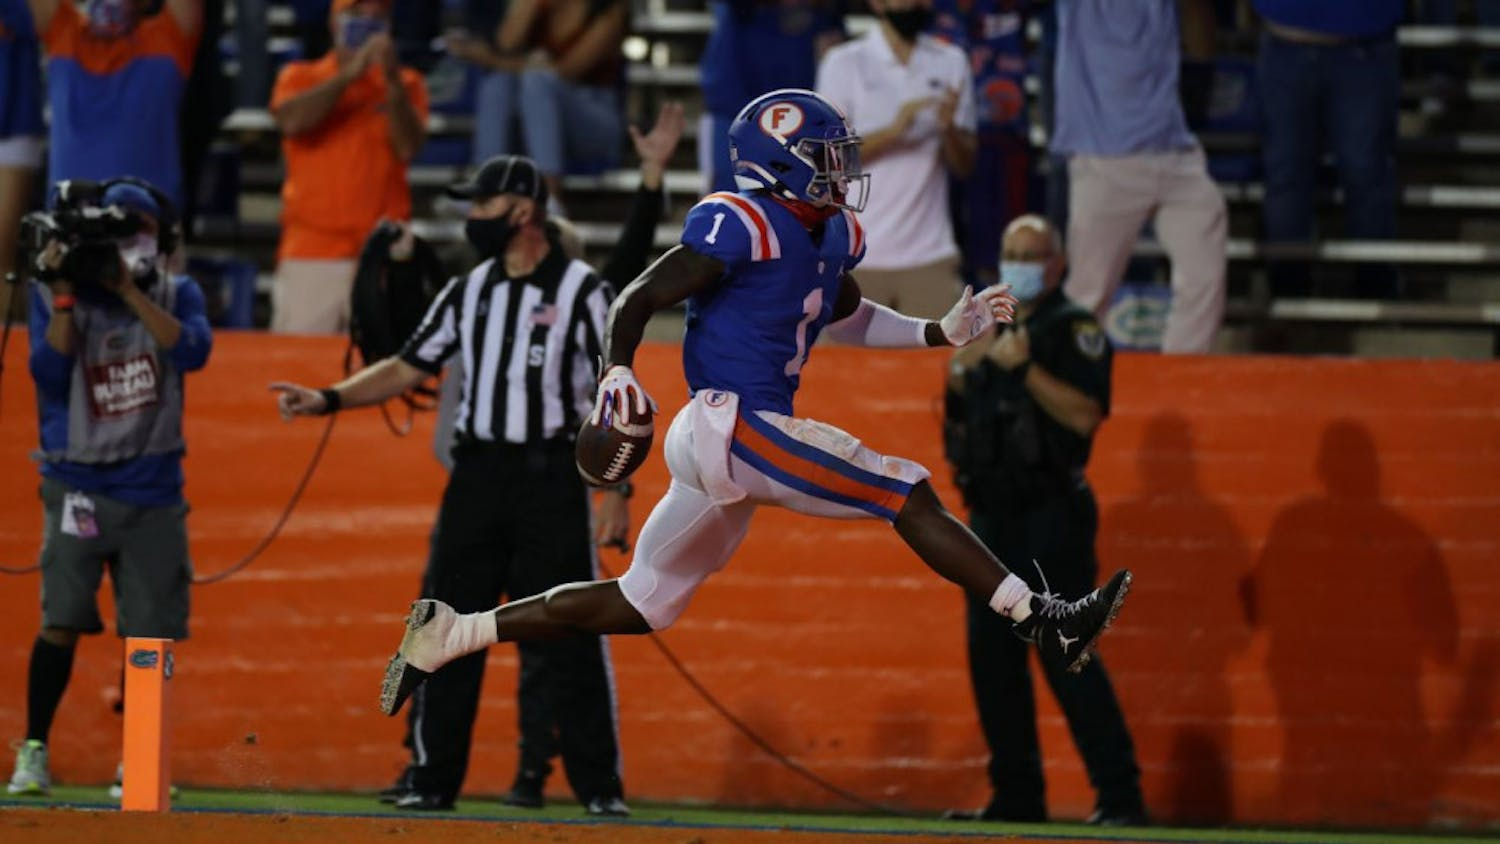 Senior Kadarius Toney had three touchdowns Saturday night in Florida's drubbing of Missouri at home.